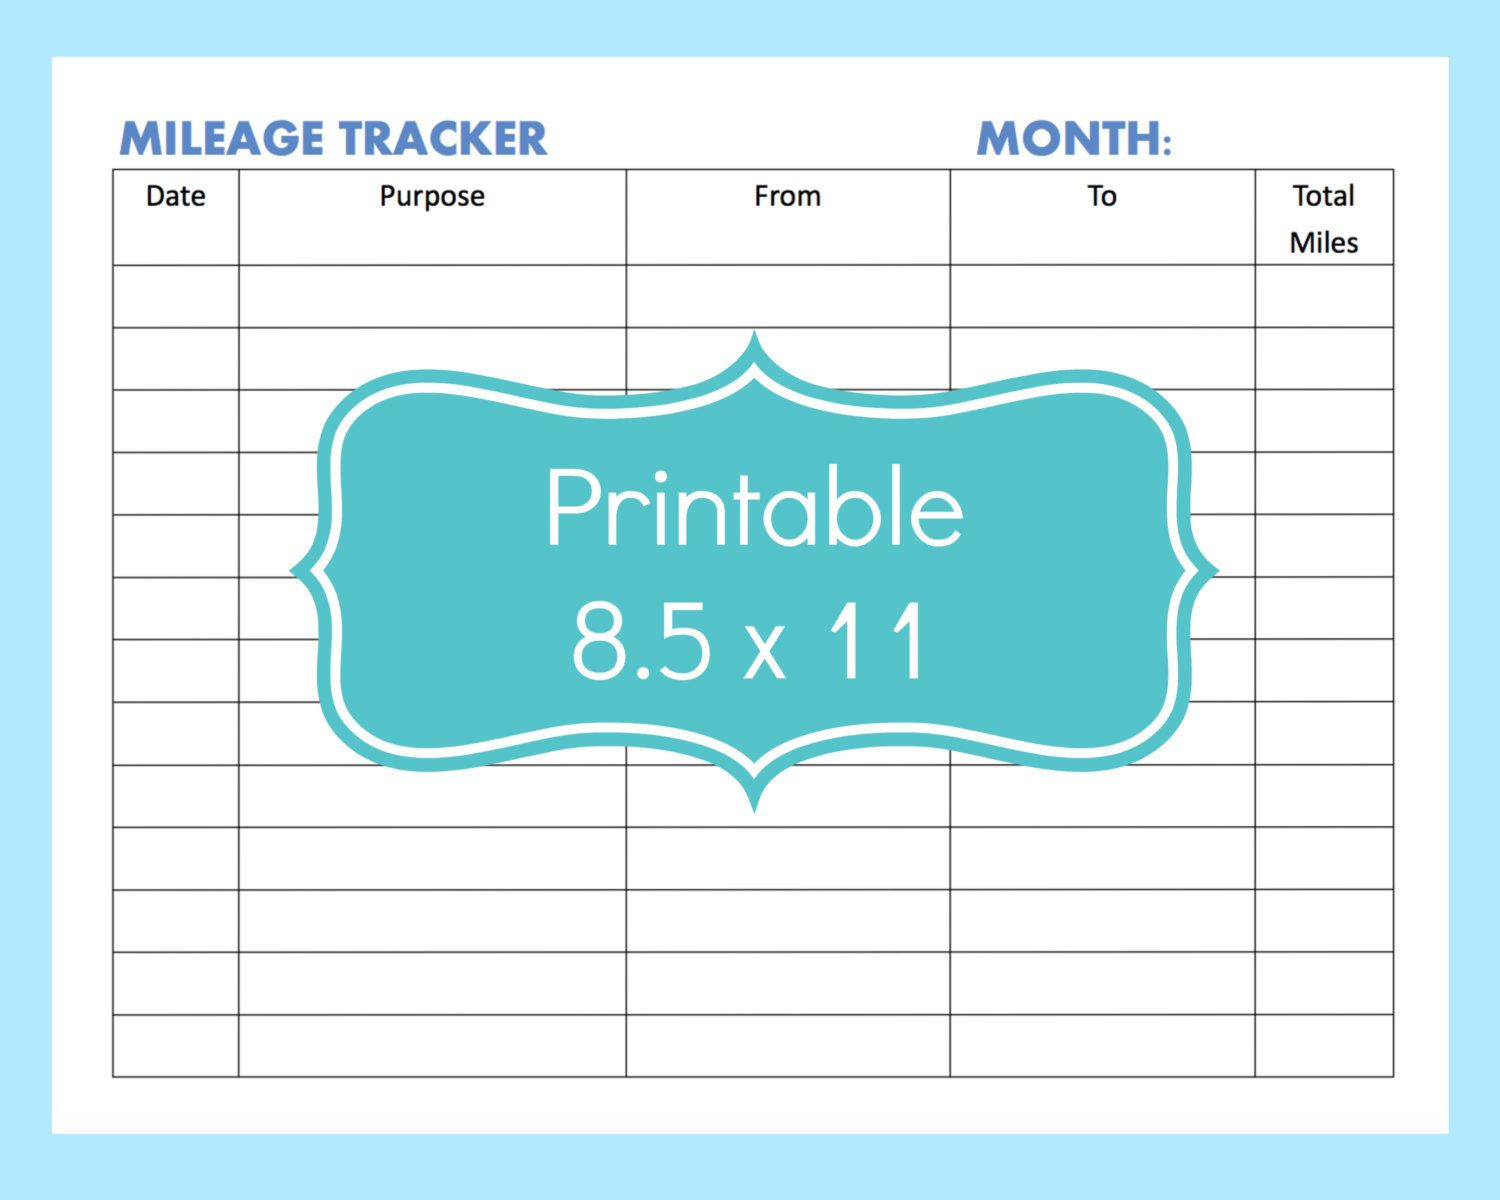 Mileage Tracker Form Printable, Printable Mileage Tracker, Mileage - Free Printable Mileage Log